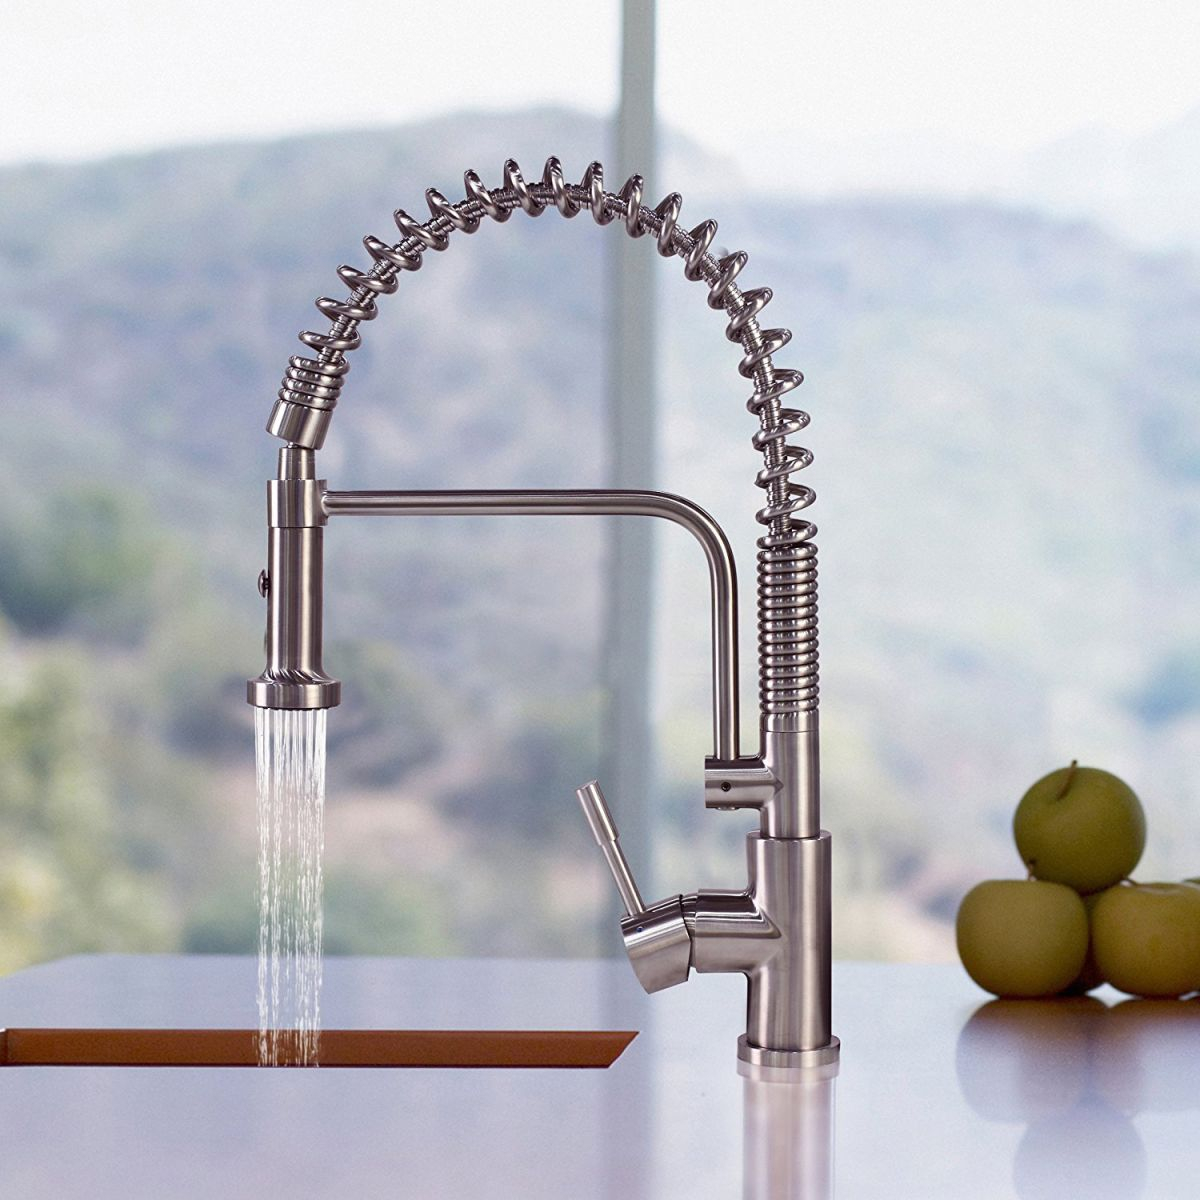 6 Best Touchless Kitchen Faucets – (Reviews & Buying Guide 2019) throughout Touchless Kitchen Faucet